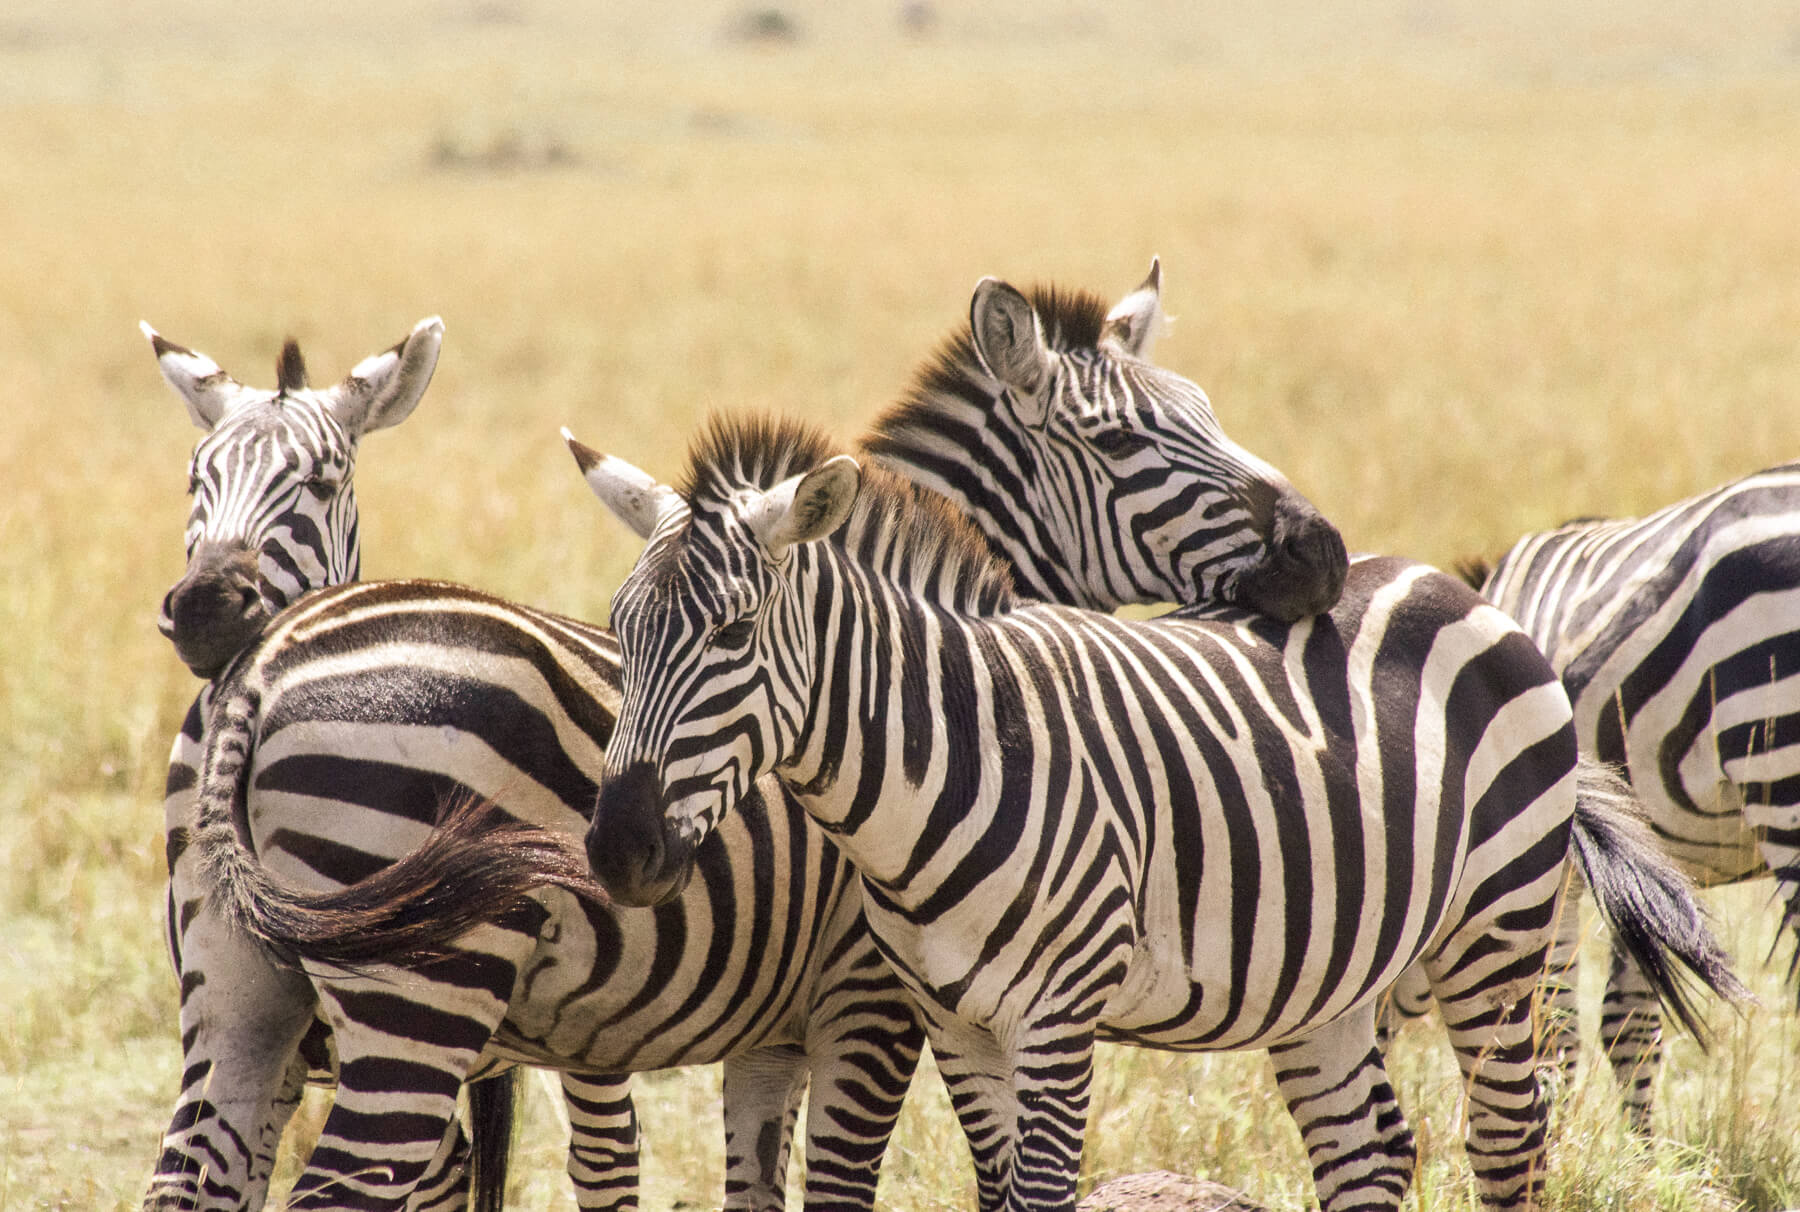 A herd of Zebra relaxing and resting their heads on one another